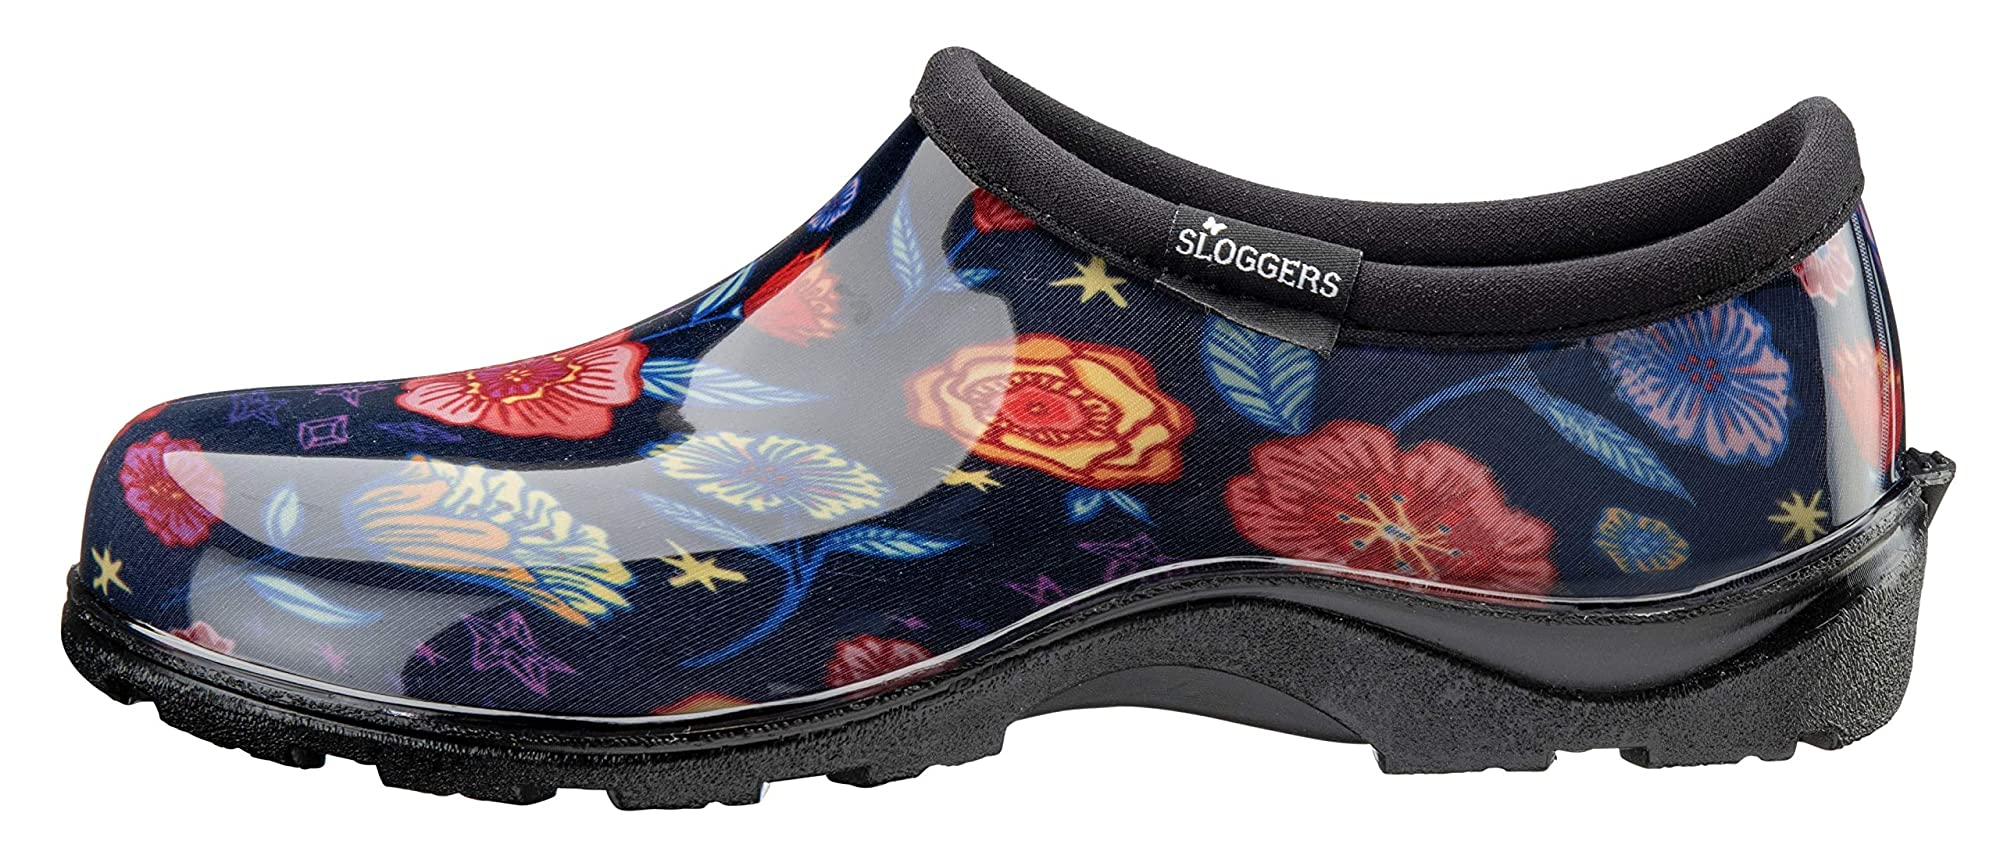 Floral Waterproof Sloggers Shoes